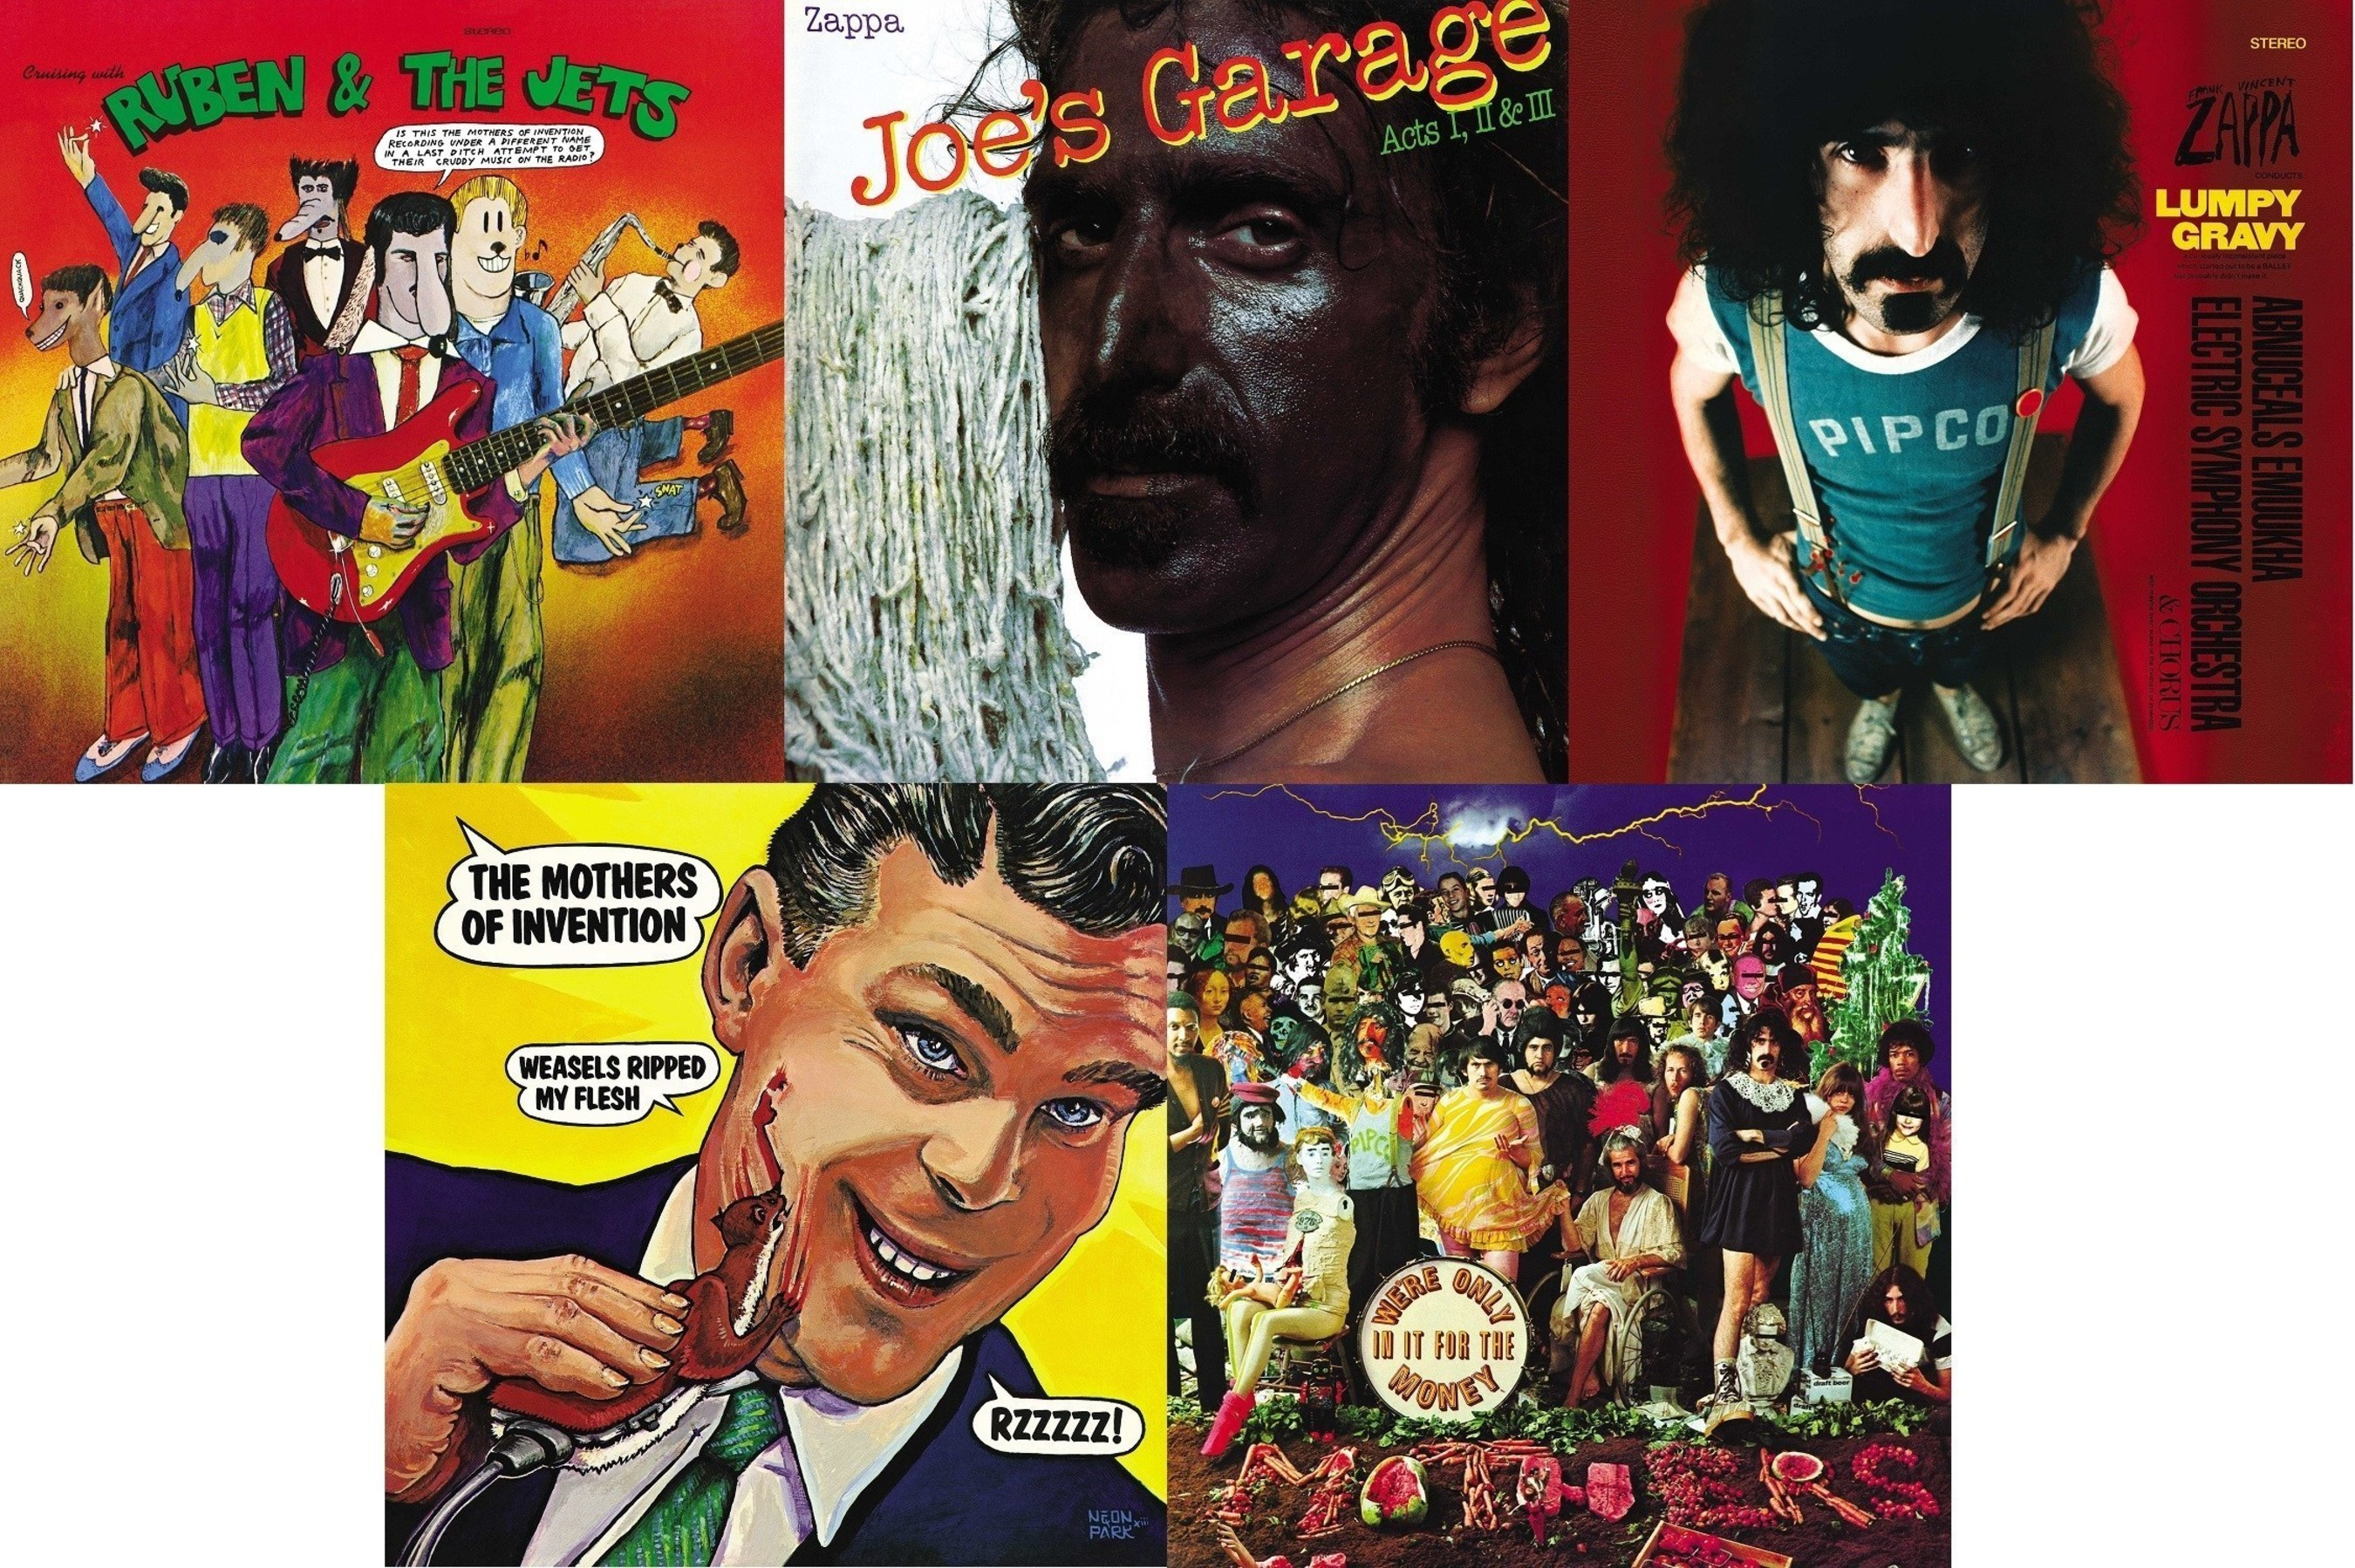 Following this month's release of three new Frank Zappa albums, the Zappa Family Trust and UMe are continuing their extensive reissue campaign by releasing five iconic works of the musical innovator on vinyl for the first time in decades: 'Cruising With Ruben & The Jets,' 'Joe's Garage,' 'Lumpy Gravy,' 'Weasels Ripped My Flesh' and 'We're Only In It For The Money.' The albums spanning Zappa's incredibly fertile late '60s-late '70s period will be pressed on 180-gram vinyl and available December 9.